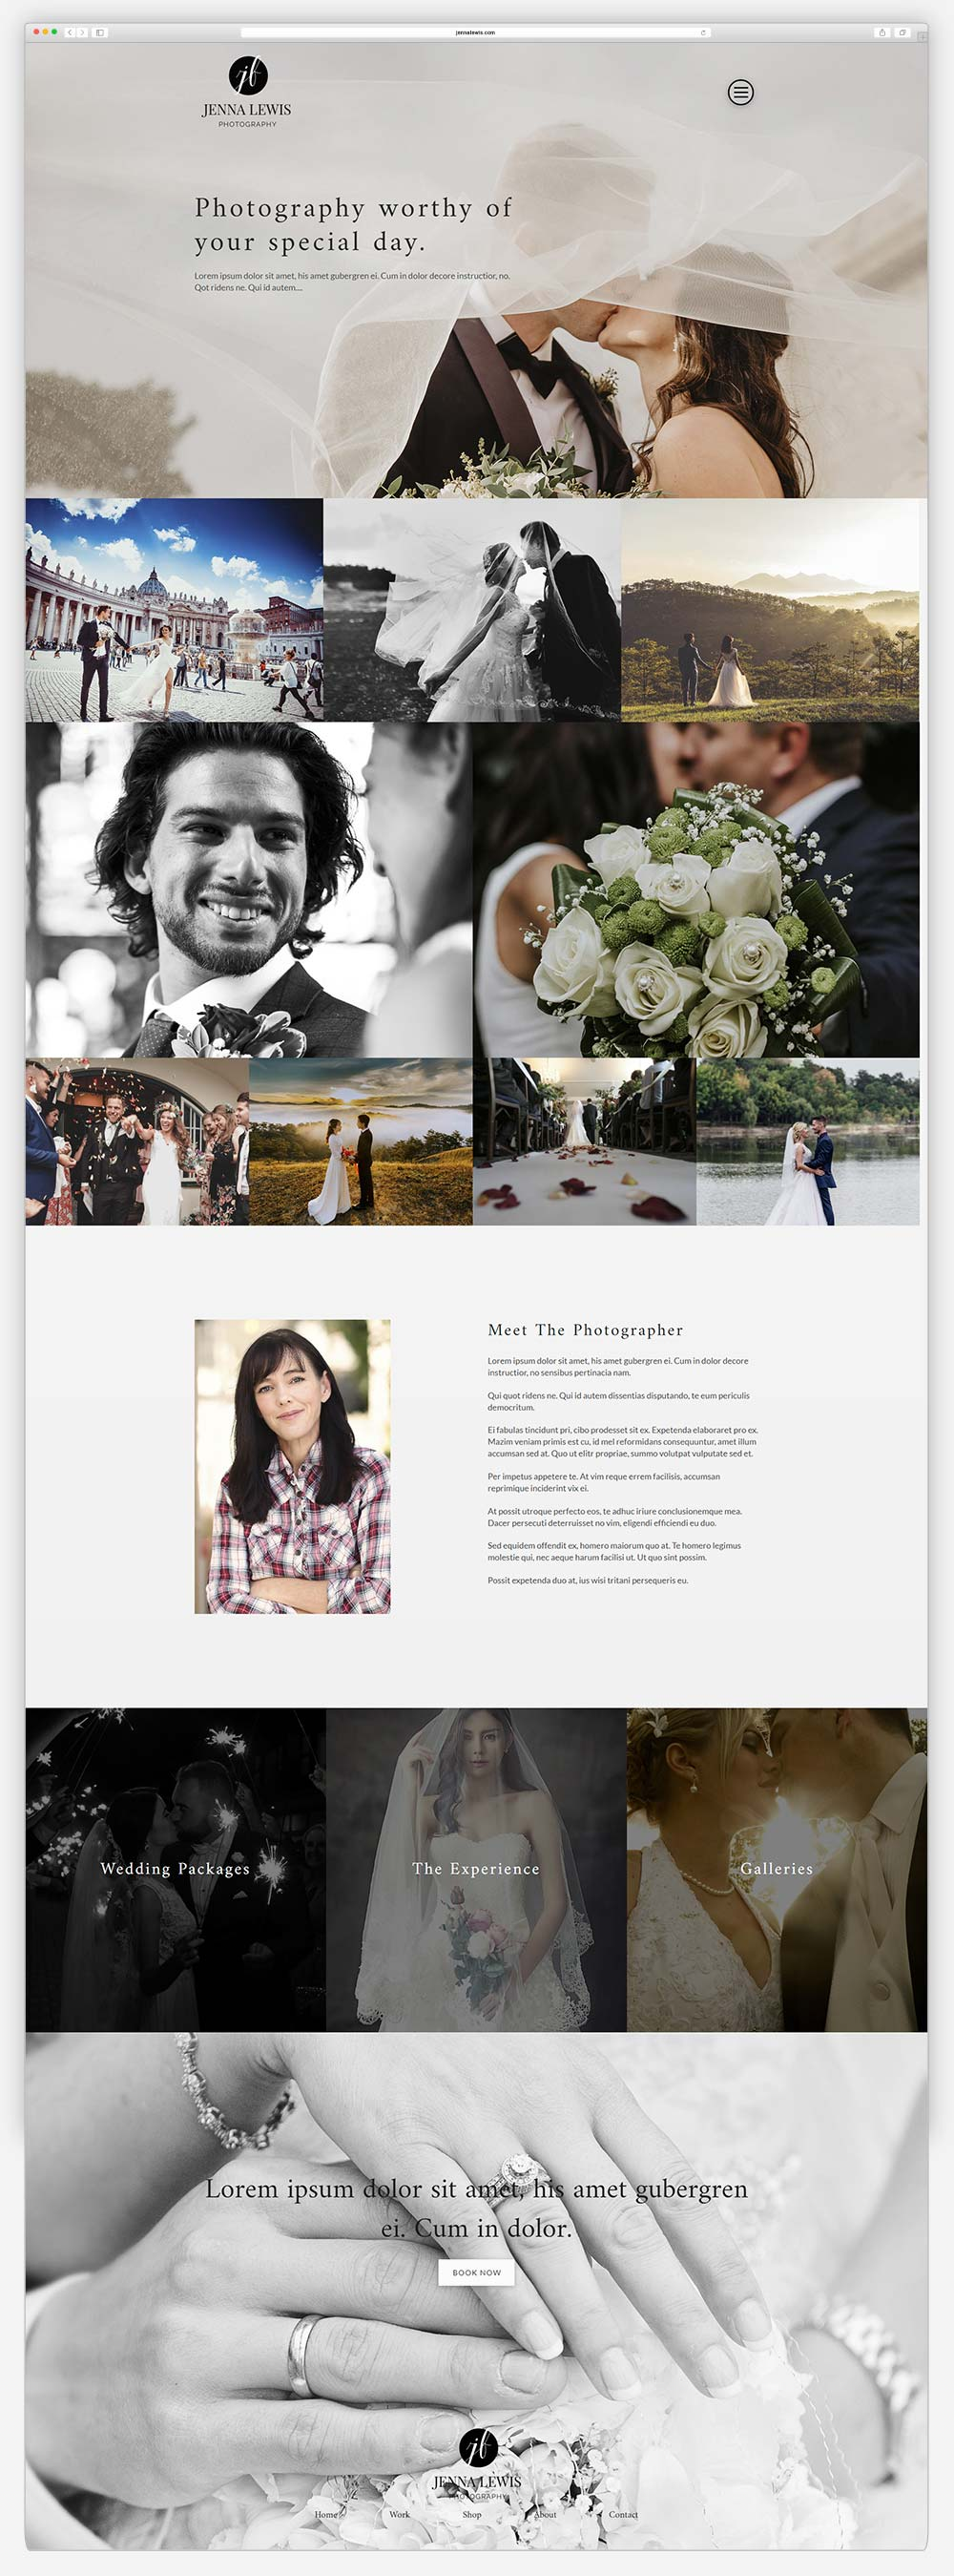 Wordpress Photography Site2 Browser